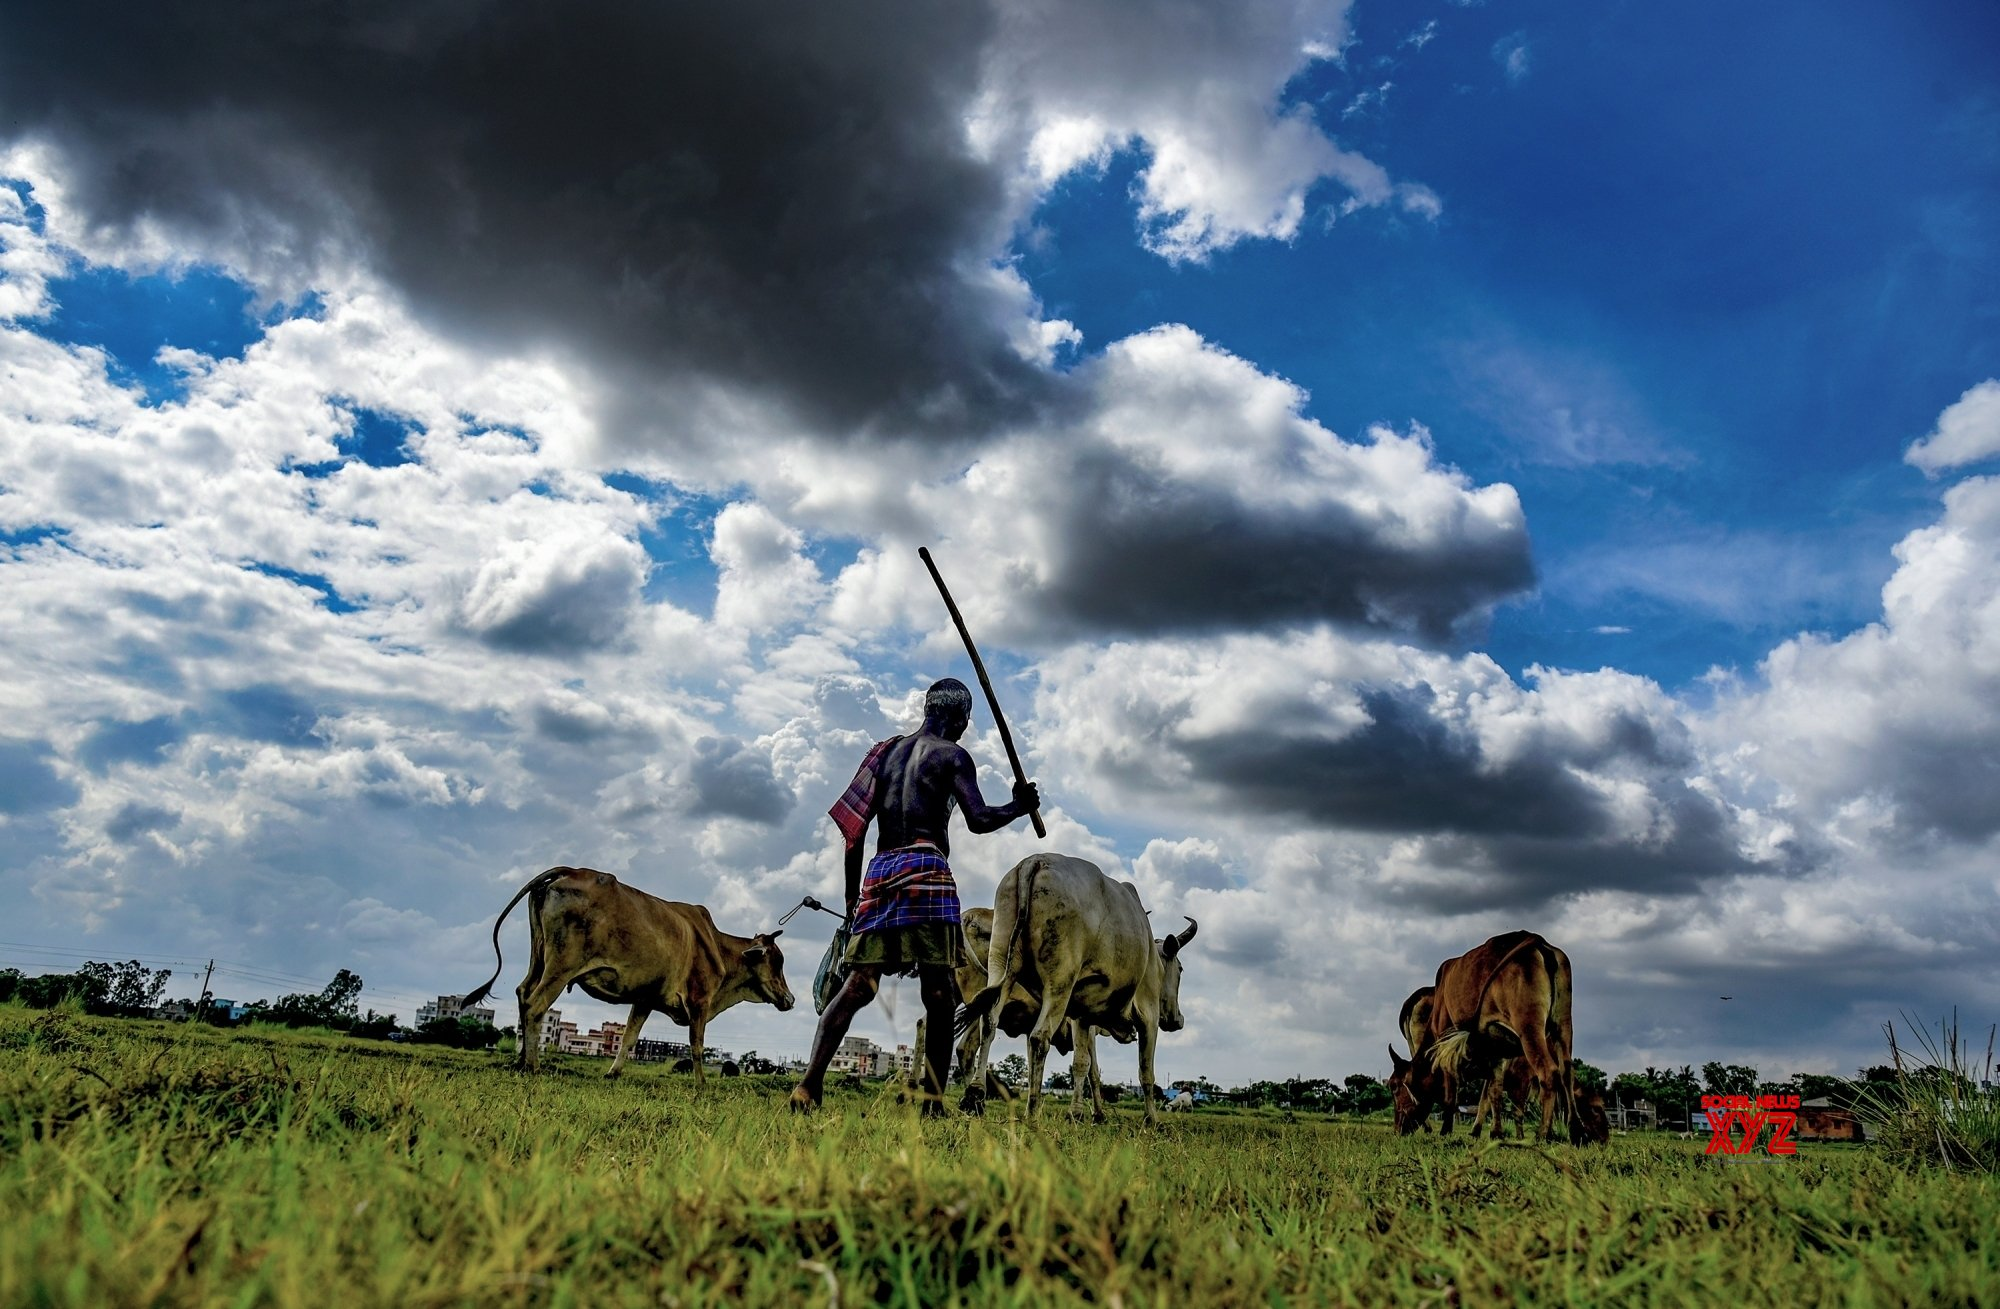 Indian agriculture: Maladies and remedies